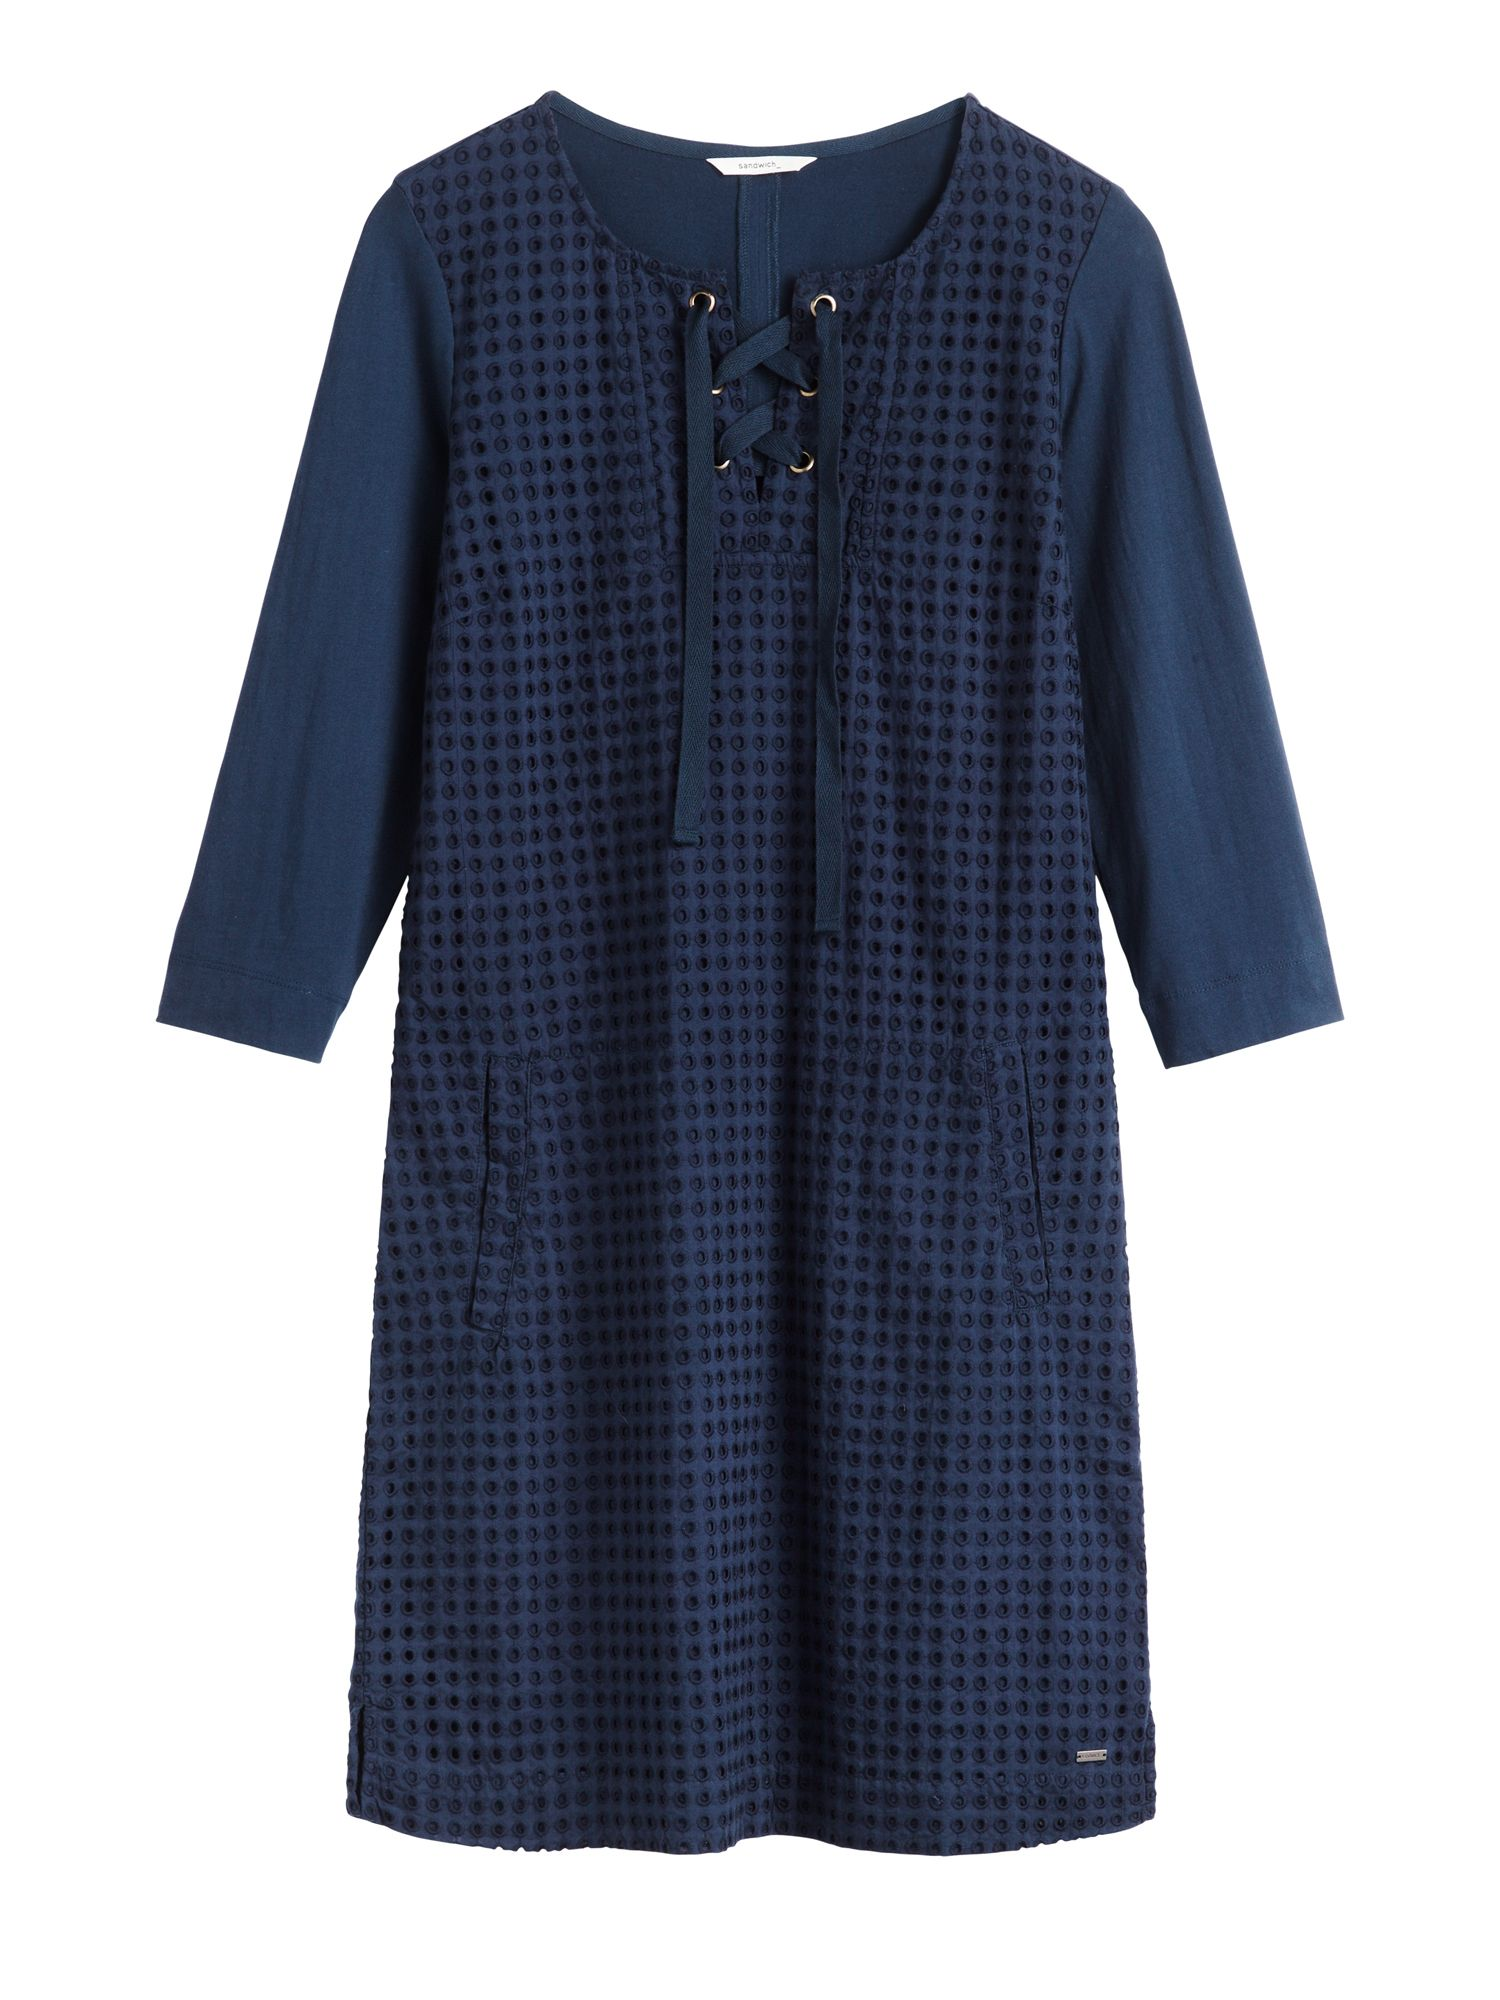 Sandwich 34 Sleeves Broderie Anglaise Dress, Blue